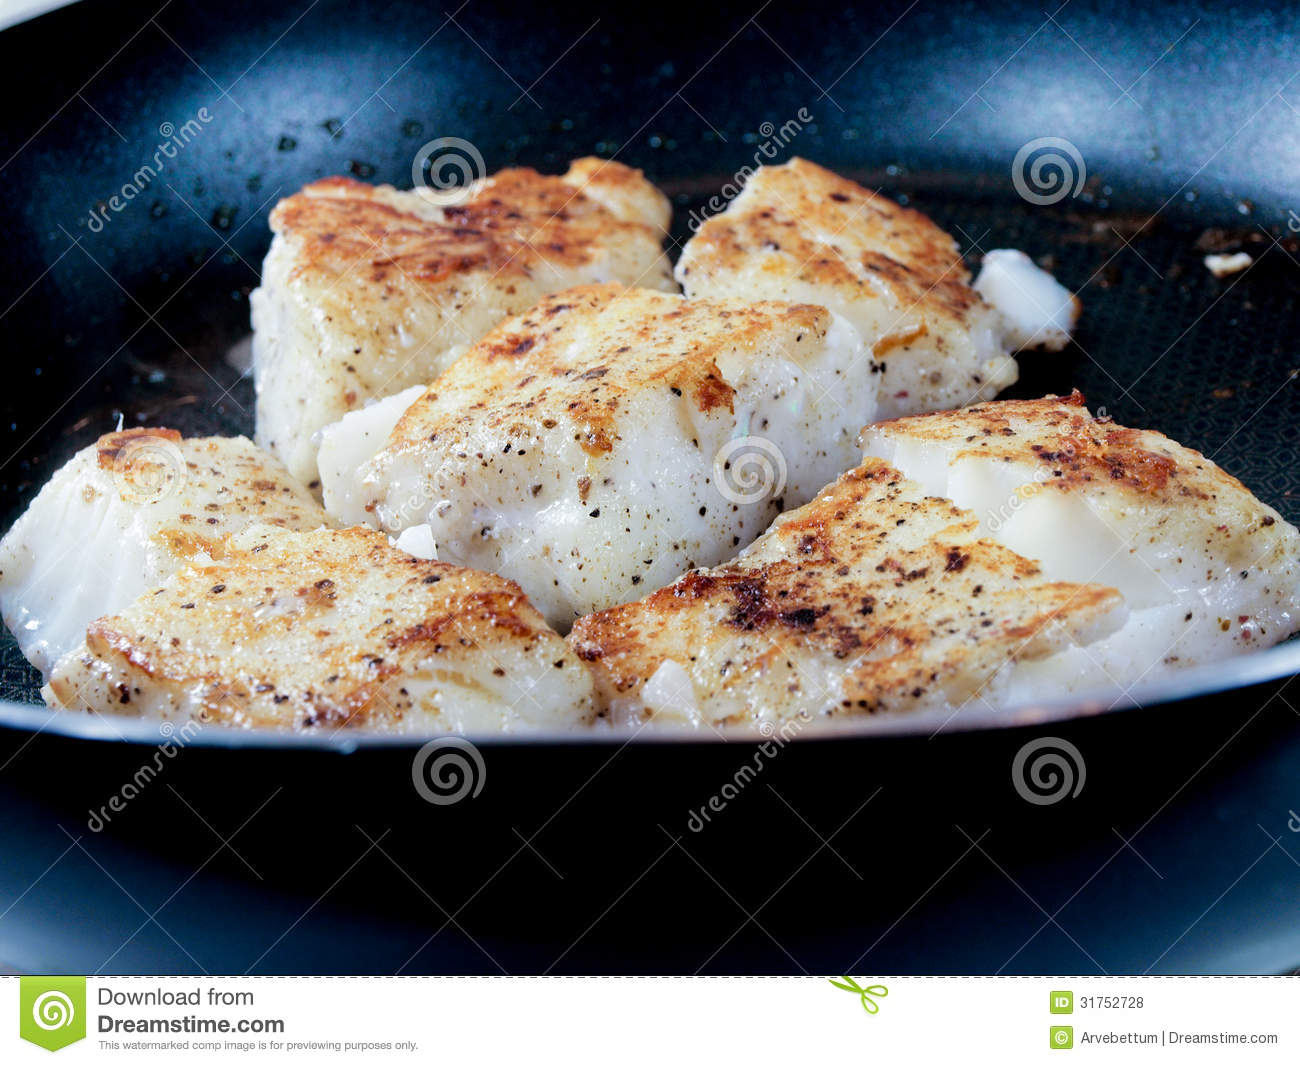 Frying fish royalty free stock photos image 31752728 for How to season fish for frying